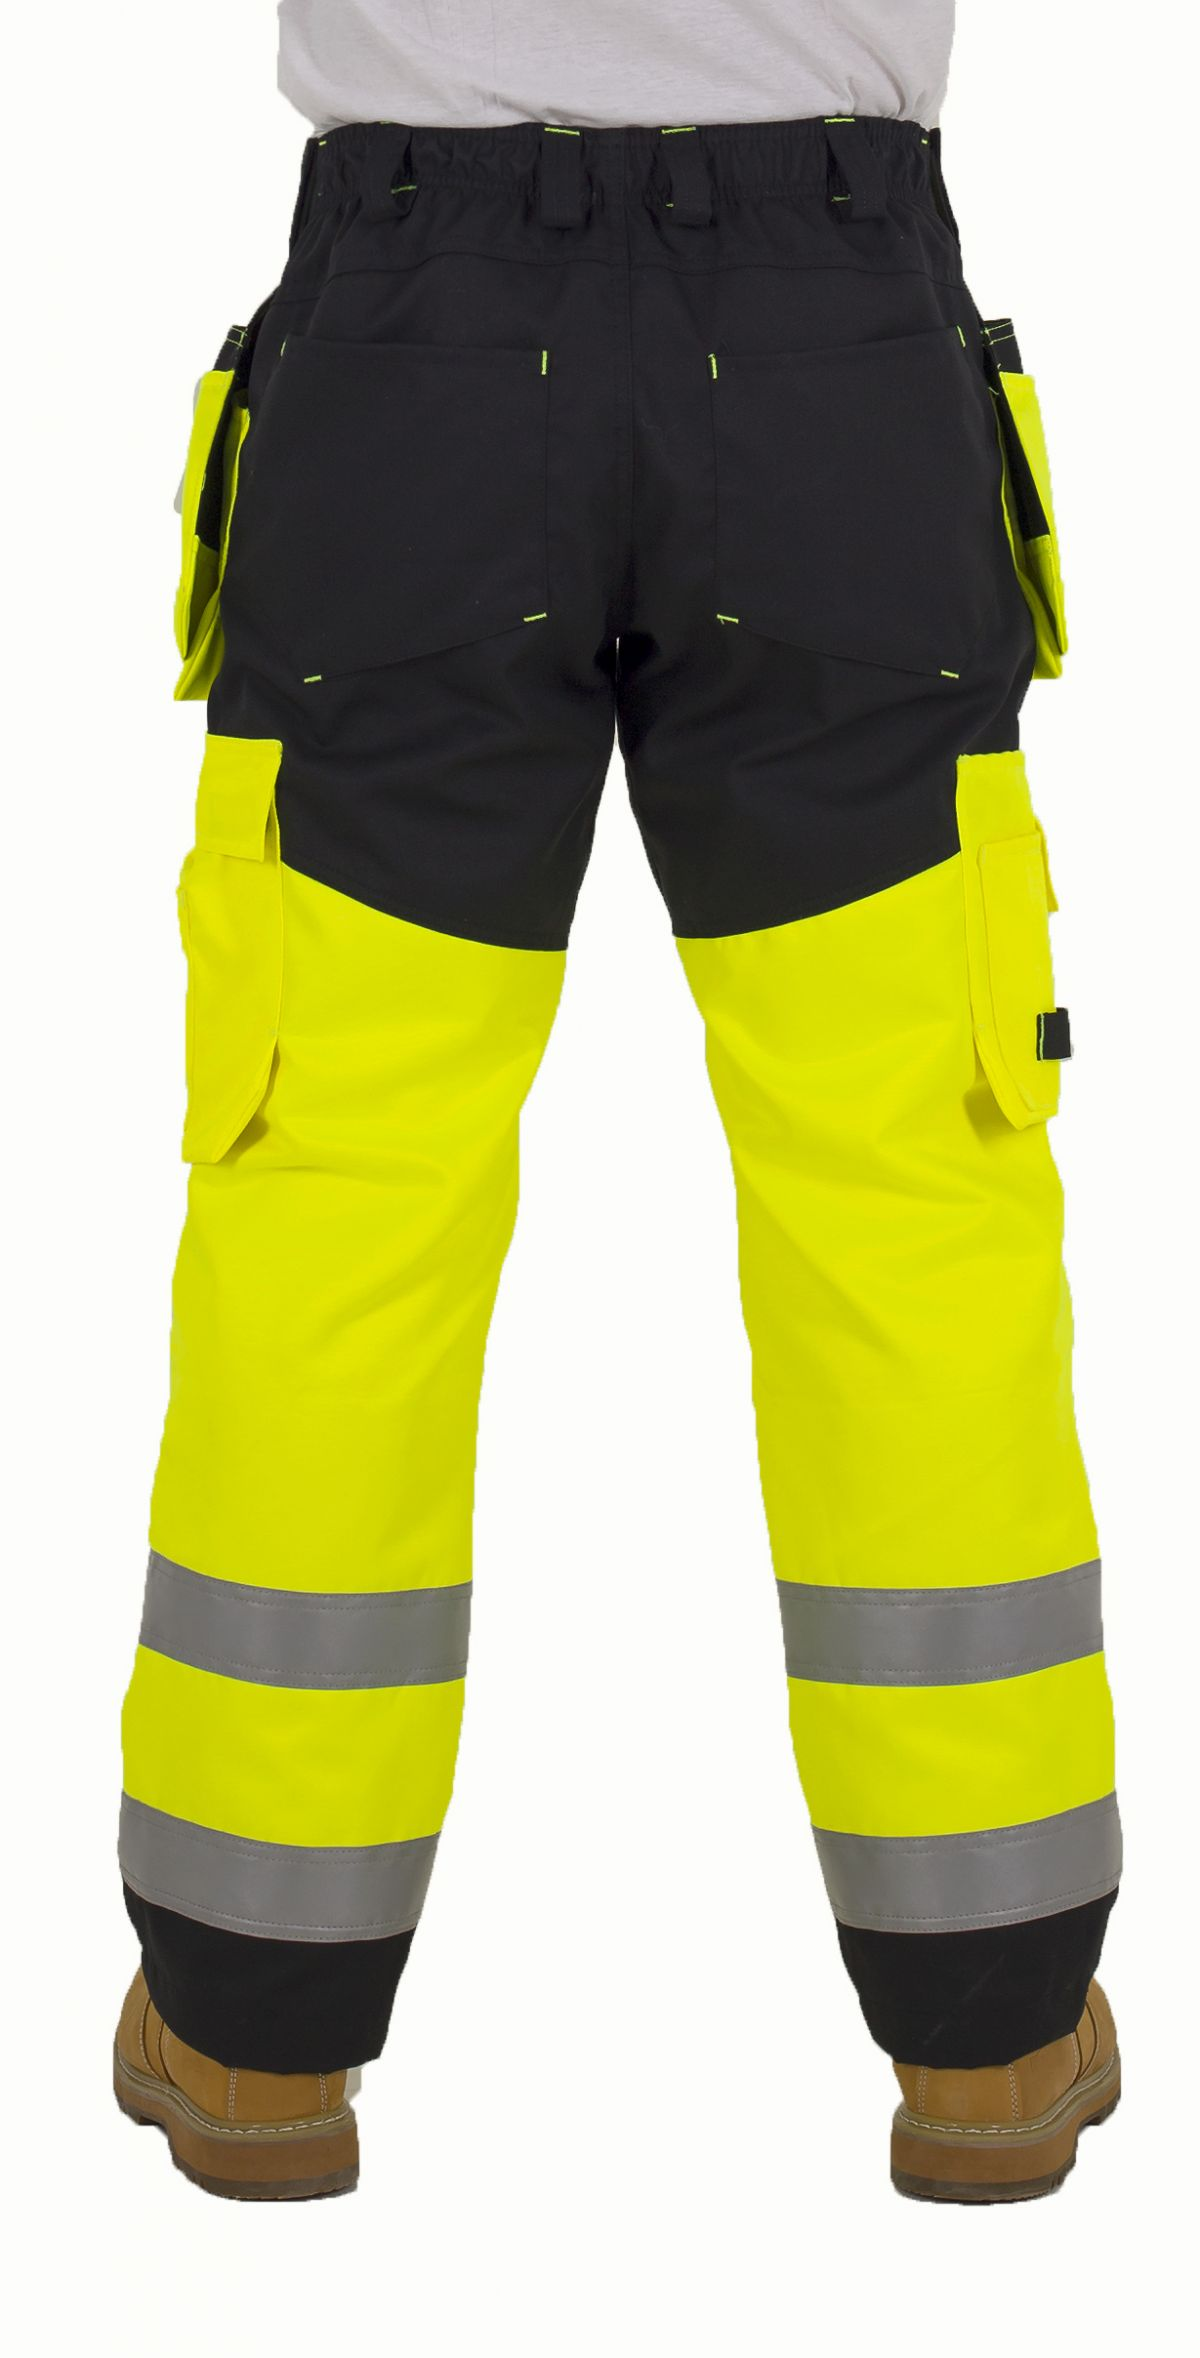 art.2100 trousers with hanging pockets. workwear VELNA